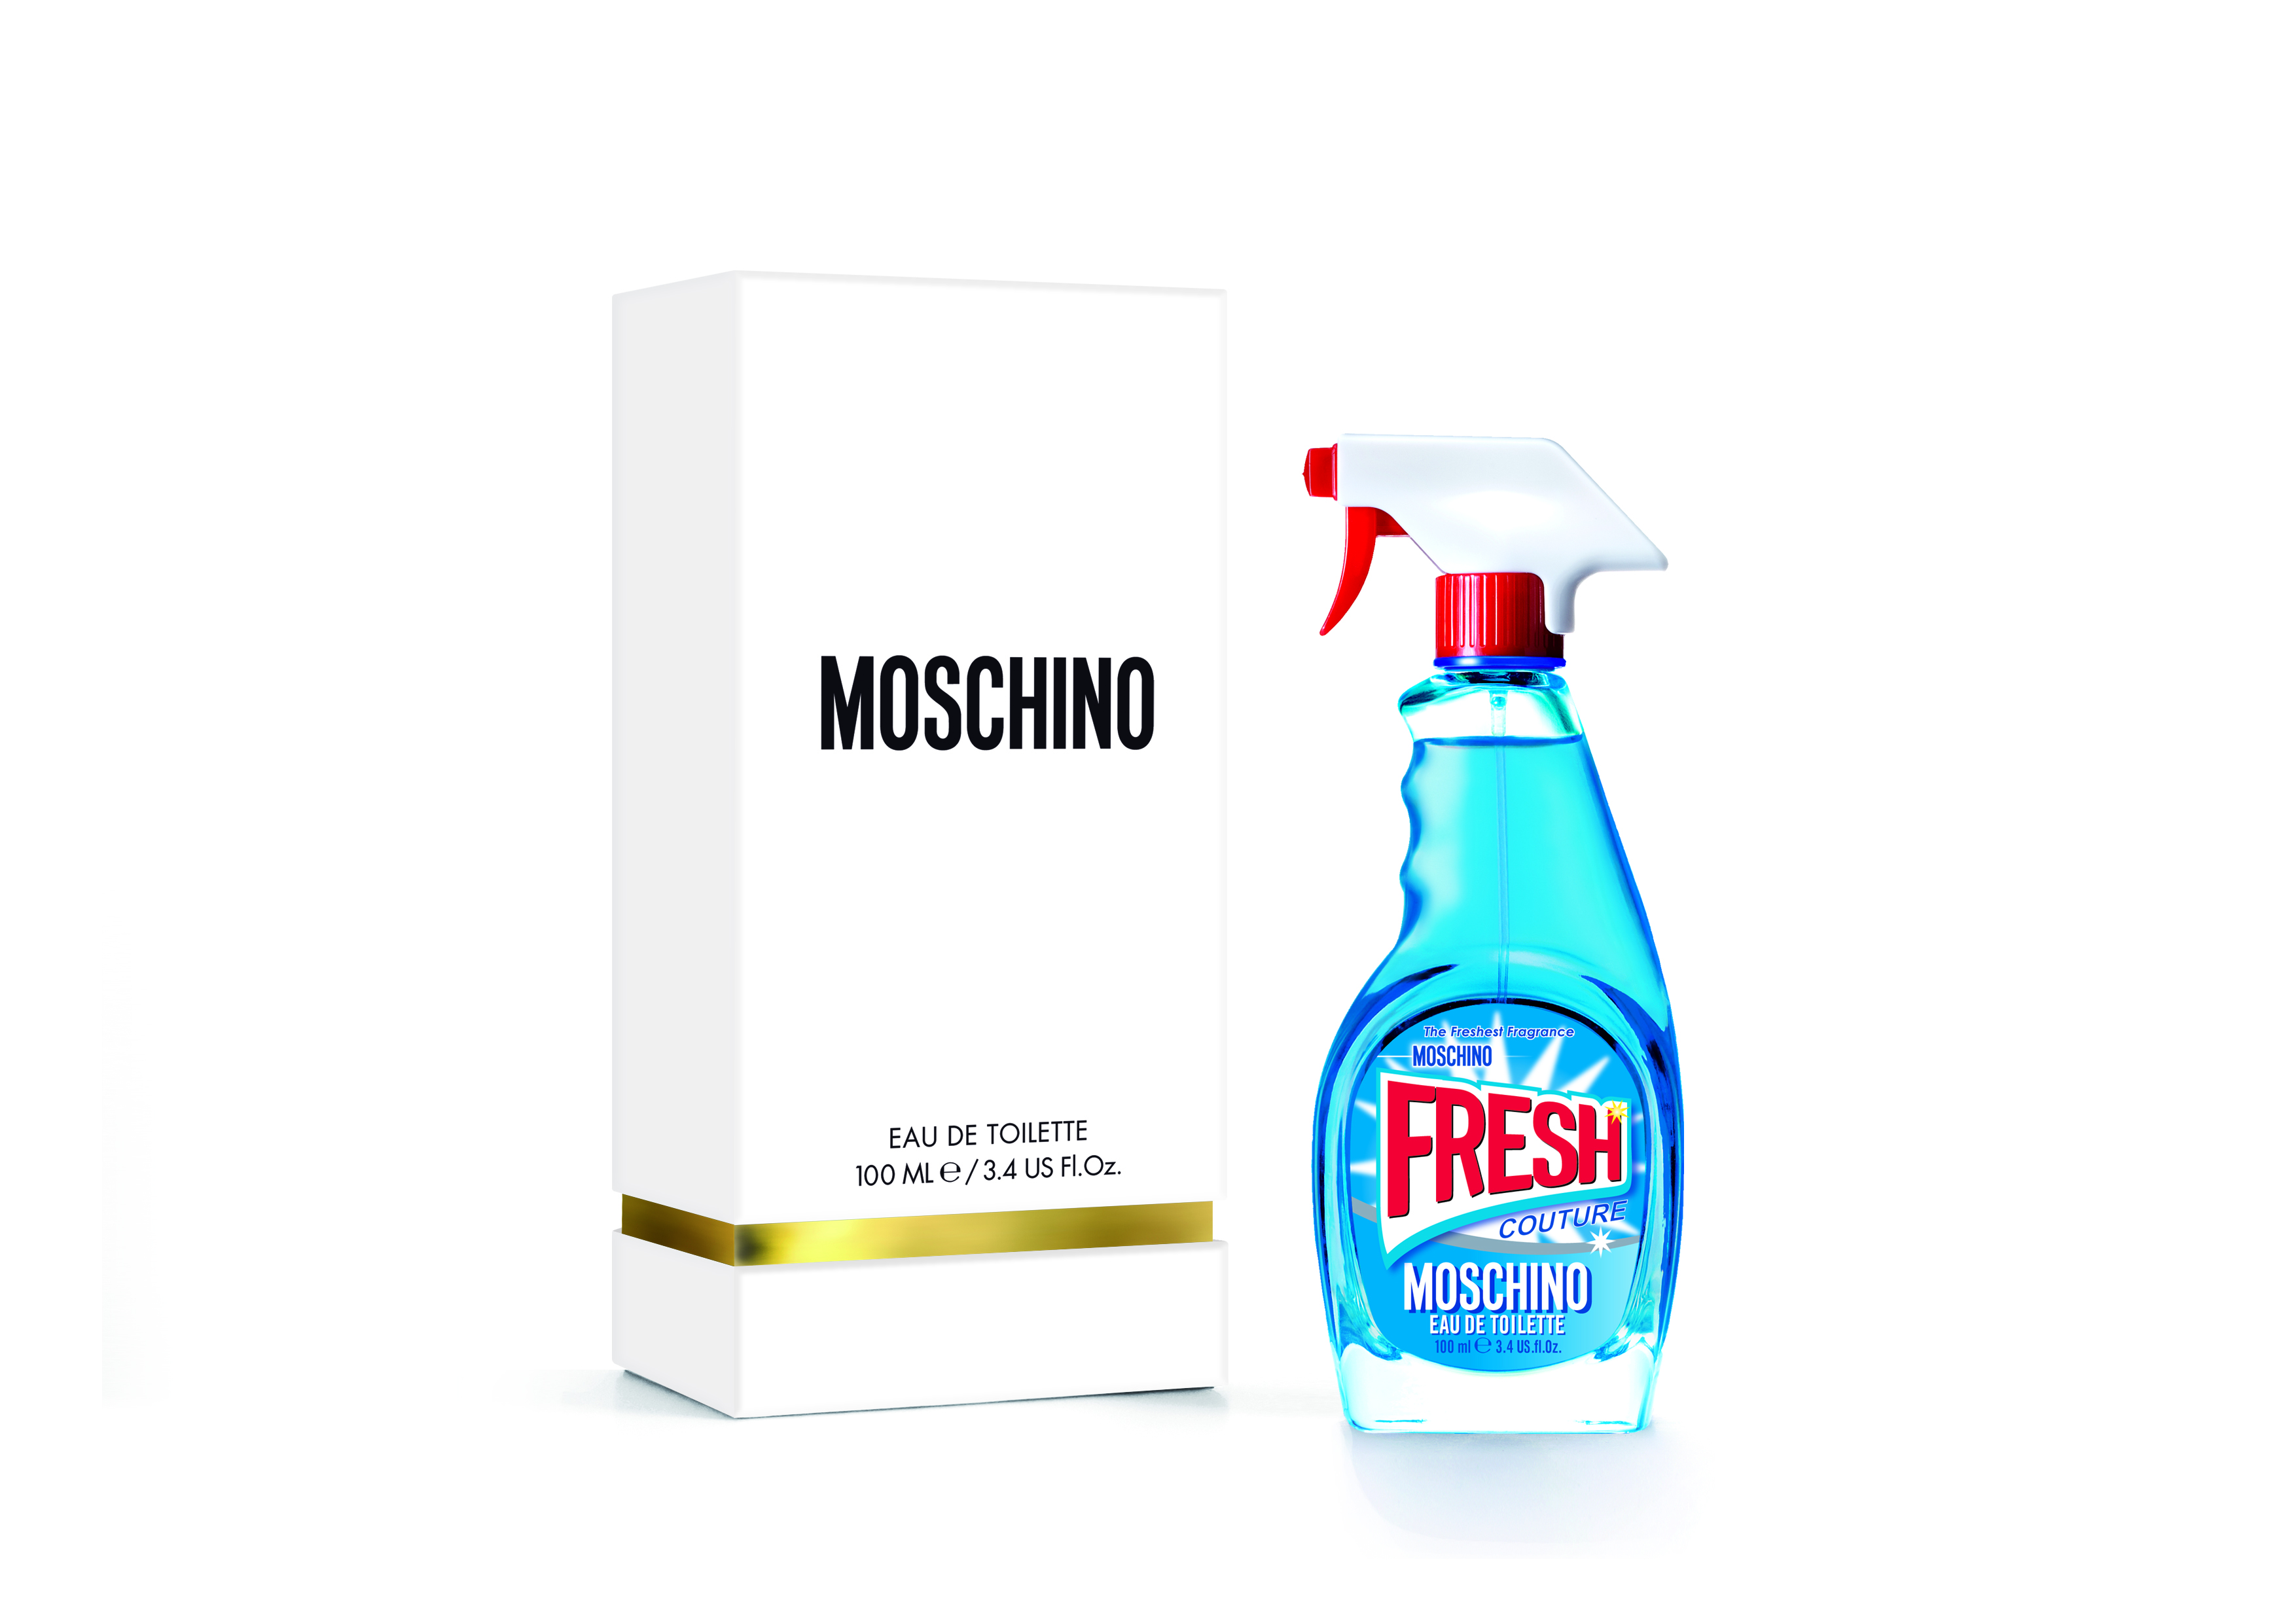 """<a href=""""https://www.moschino.com/us/fragrance_cod62000819hg.html"""" target=""""_blank"""">Moschino Fresh EDT (100ml), $125.00. On sale from October 16.</a>"""